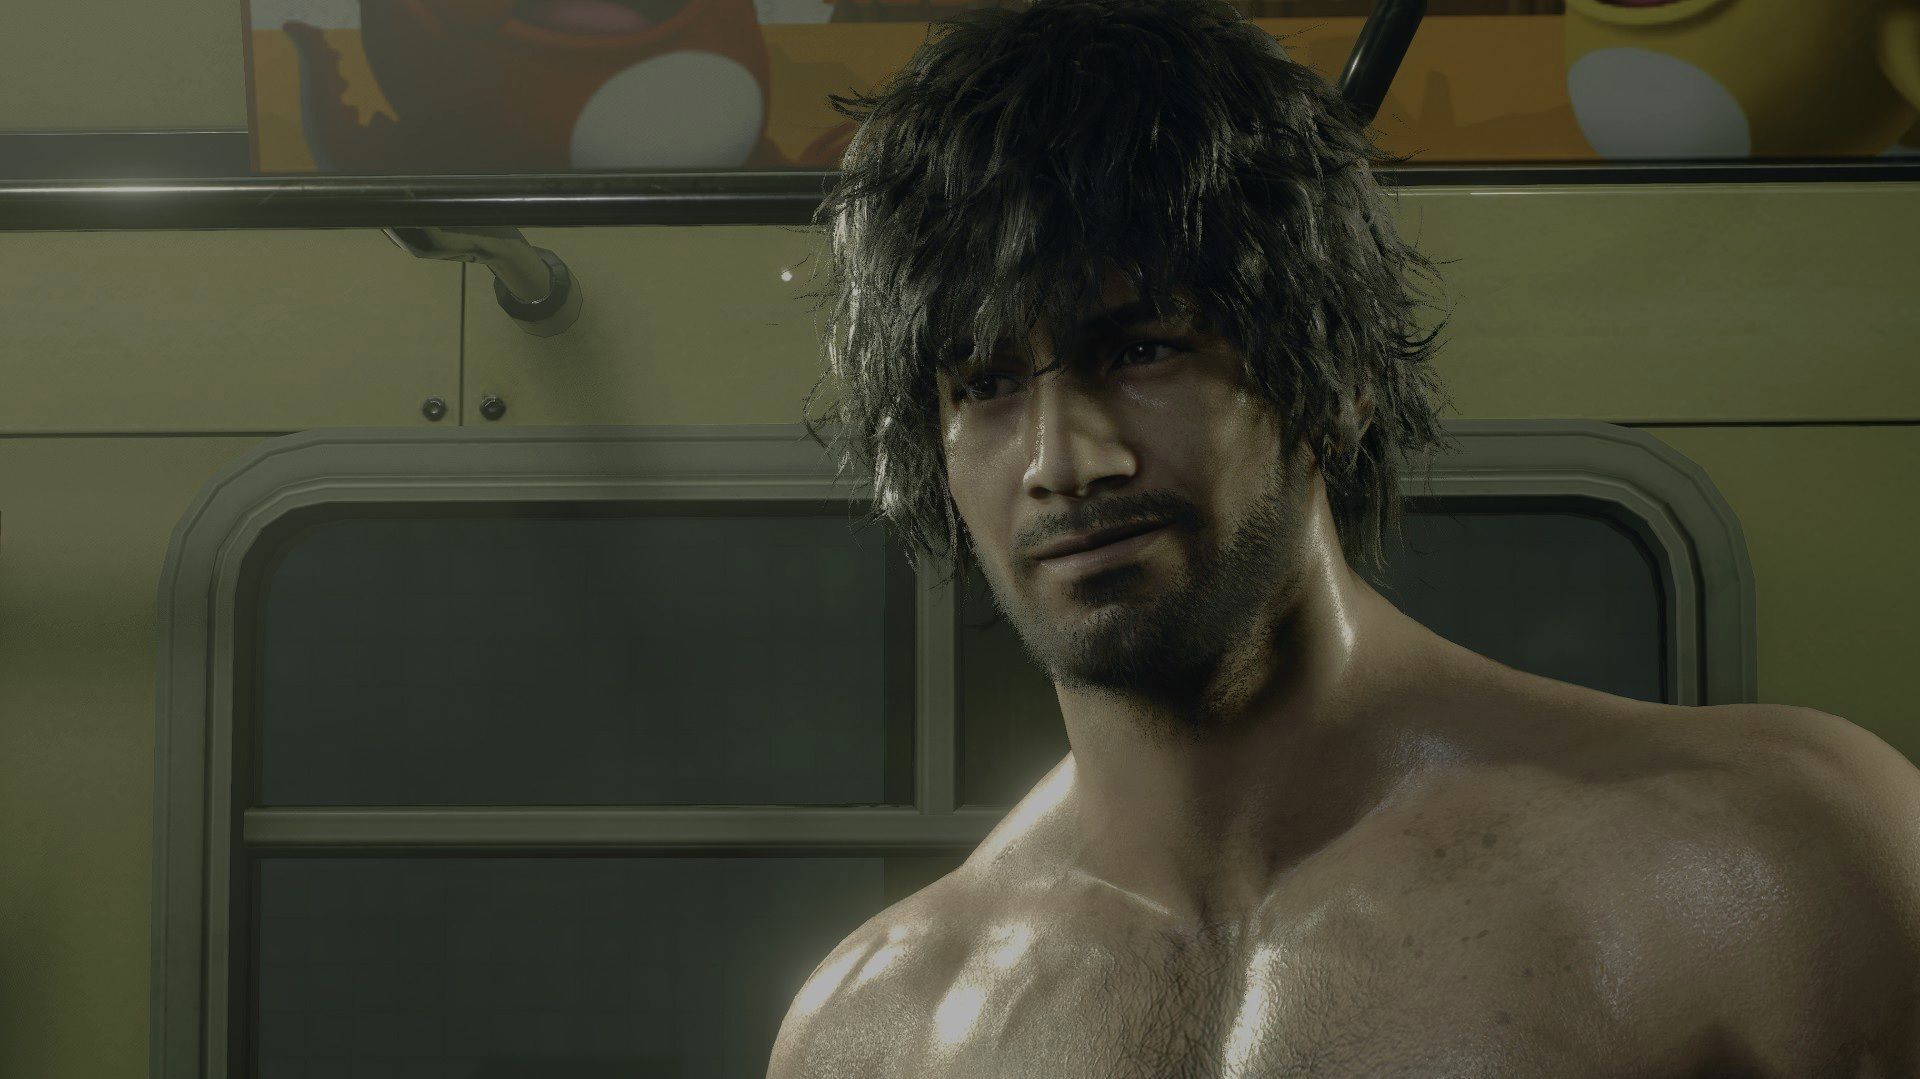 Here S A Shirtless Carlos Mod For Resident Evil 3 Rock Paper Shotgun